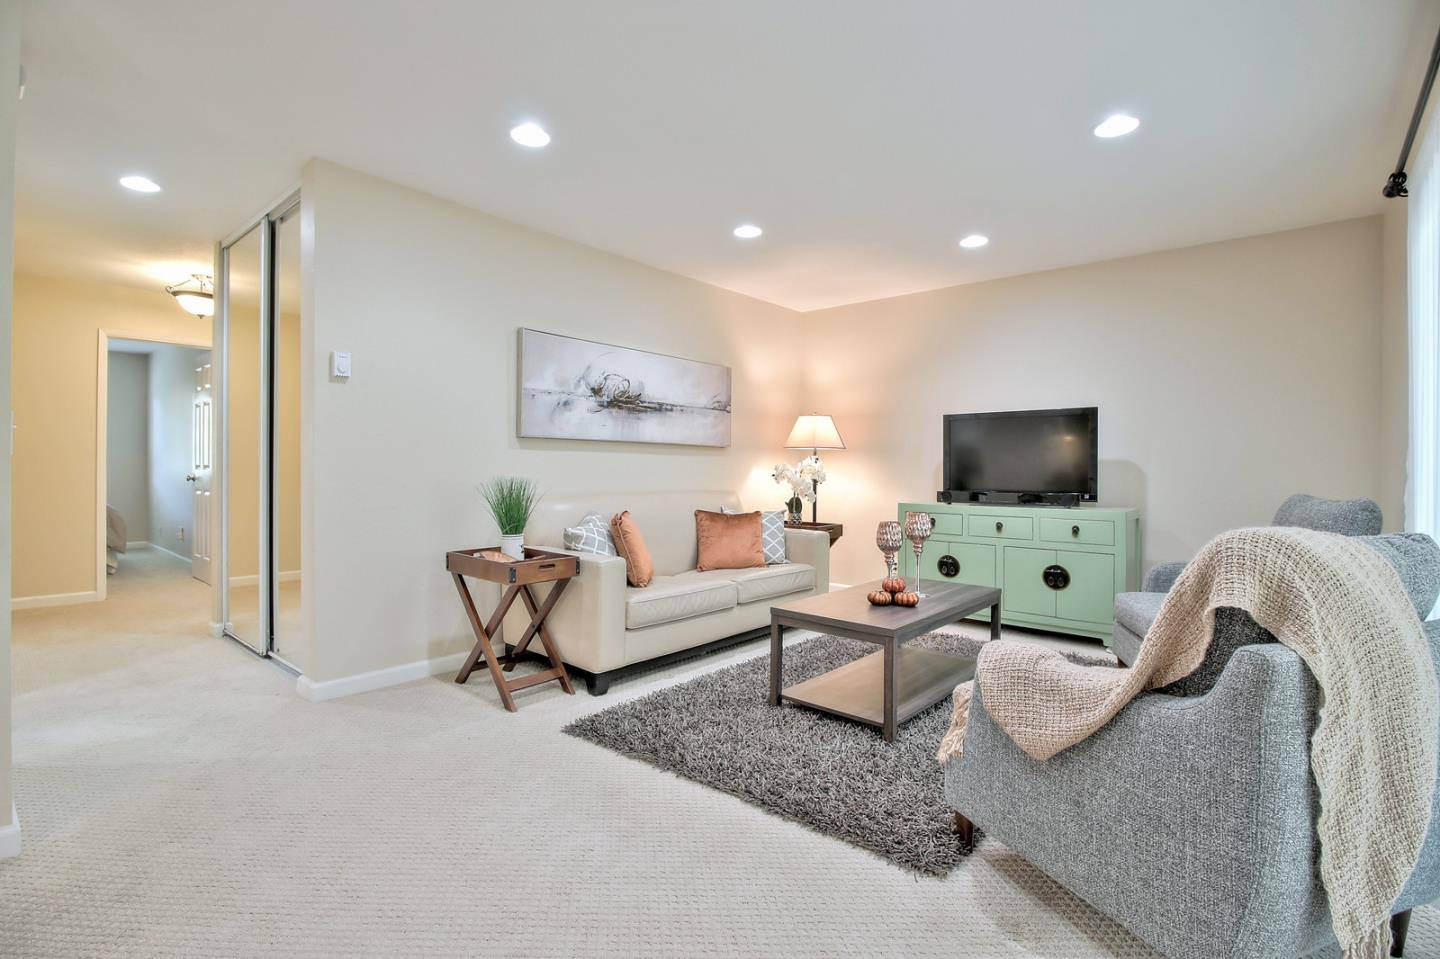 99 SHERLAND AVE C, MOUNTAIN VIEW, CA 94043